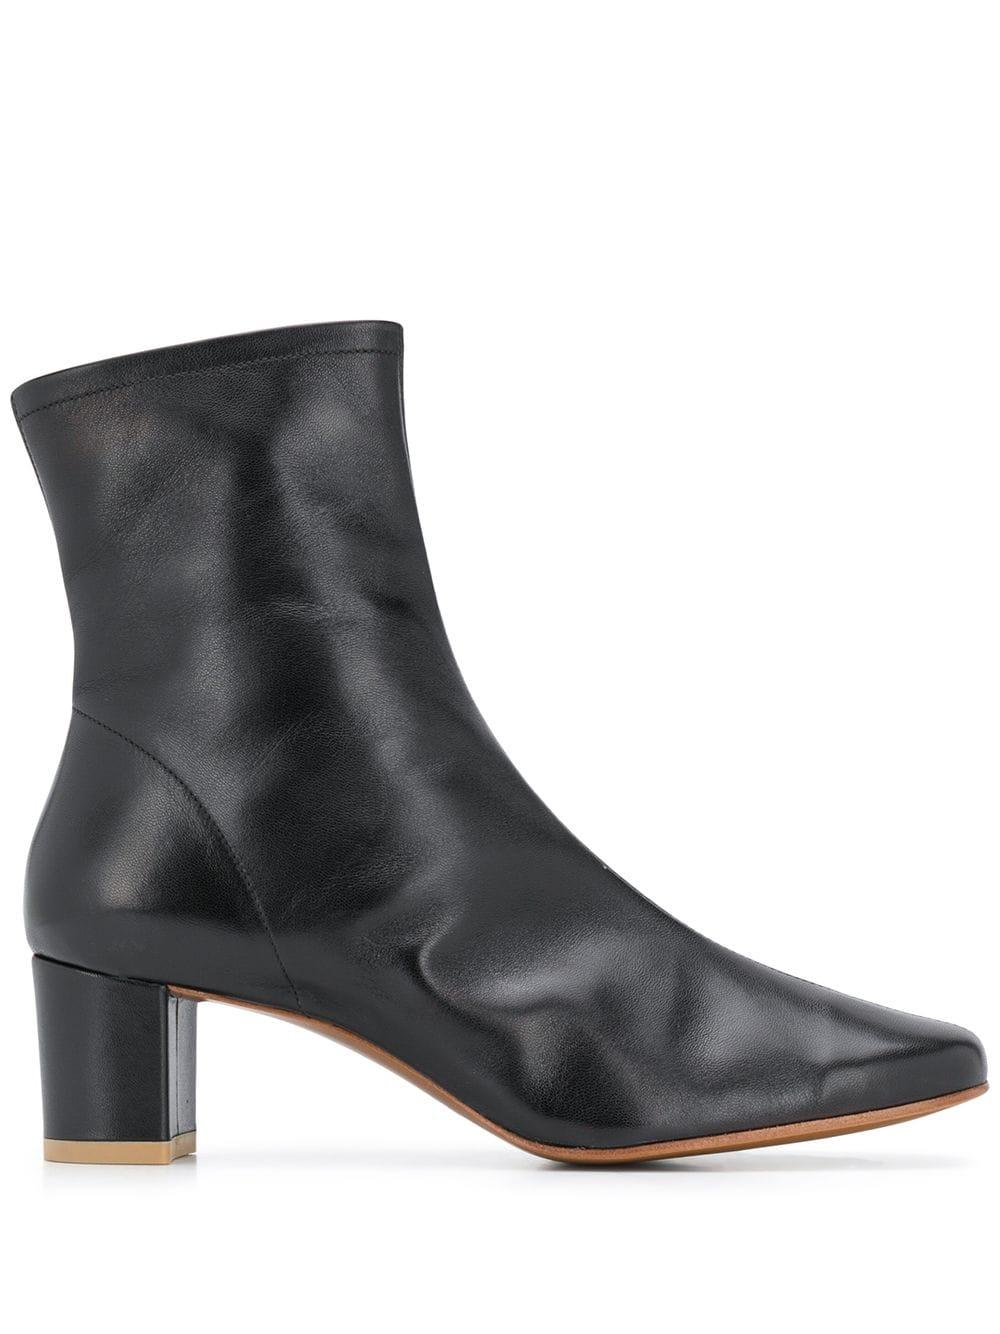 Sofia Leather Bootie